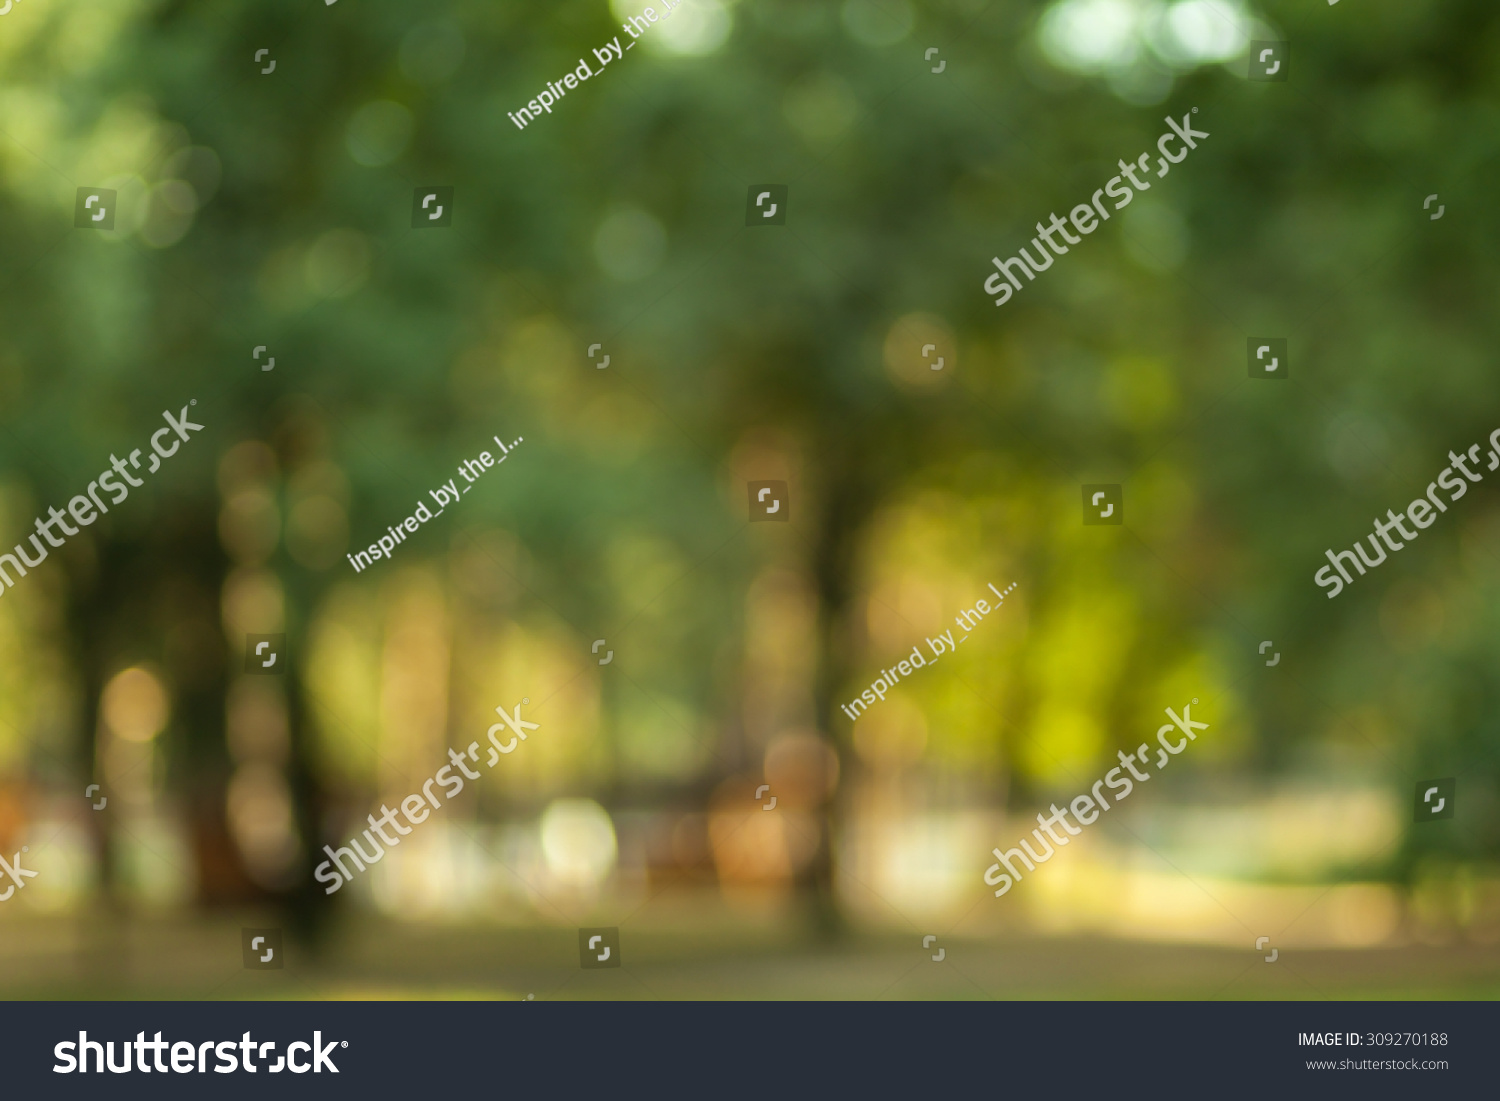 blurry nature wallpaper forest bokeh background stock photo & image